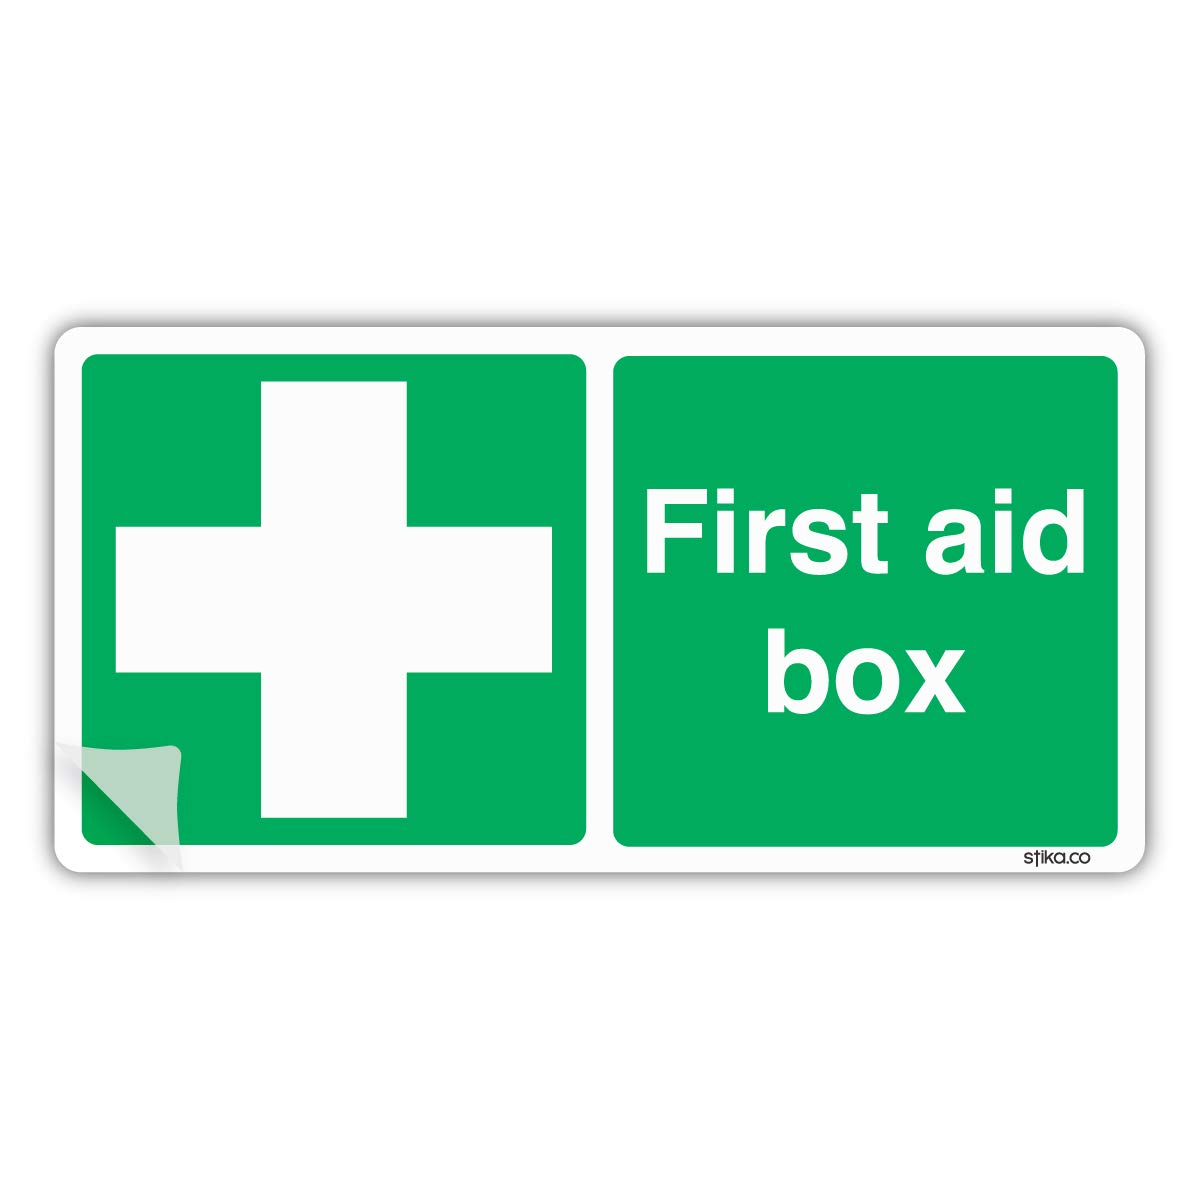 First Aid Box Sign, 20 x 10cm, Self-adhesive Vinyl Sticker, First aid and Emergency Safety Signs stika.co